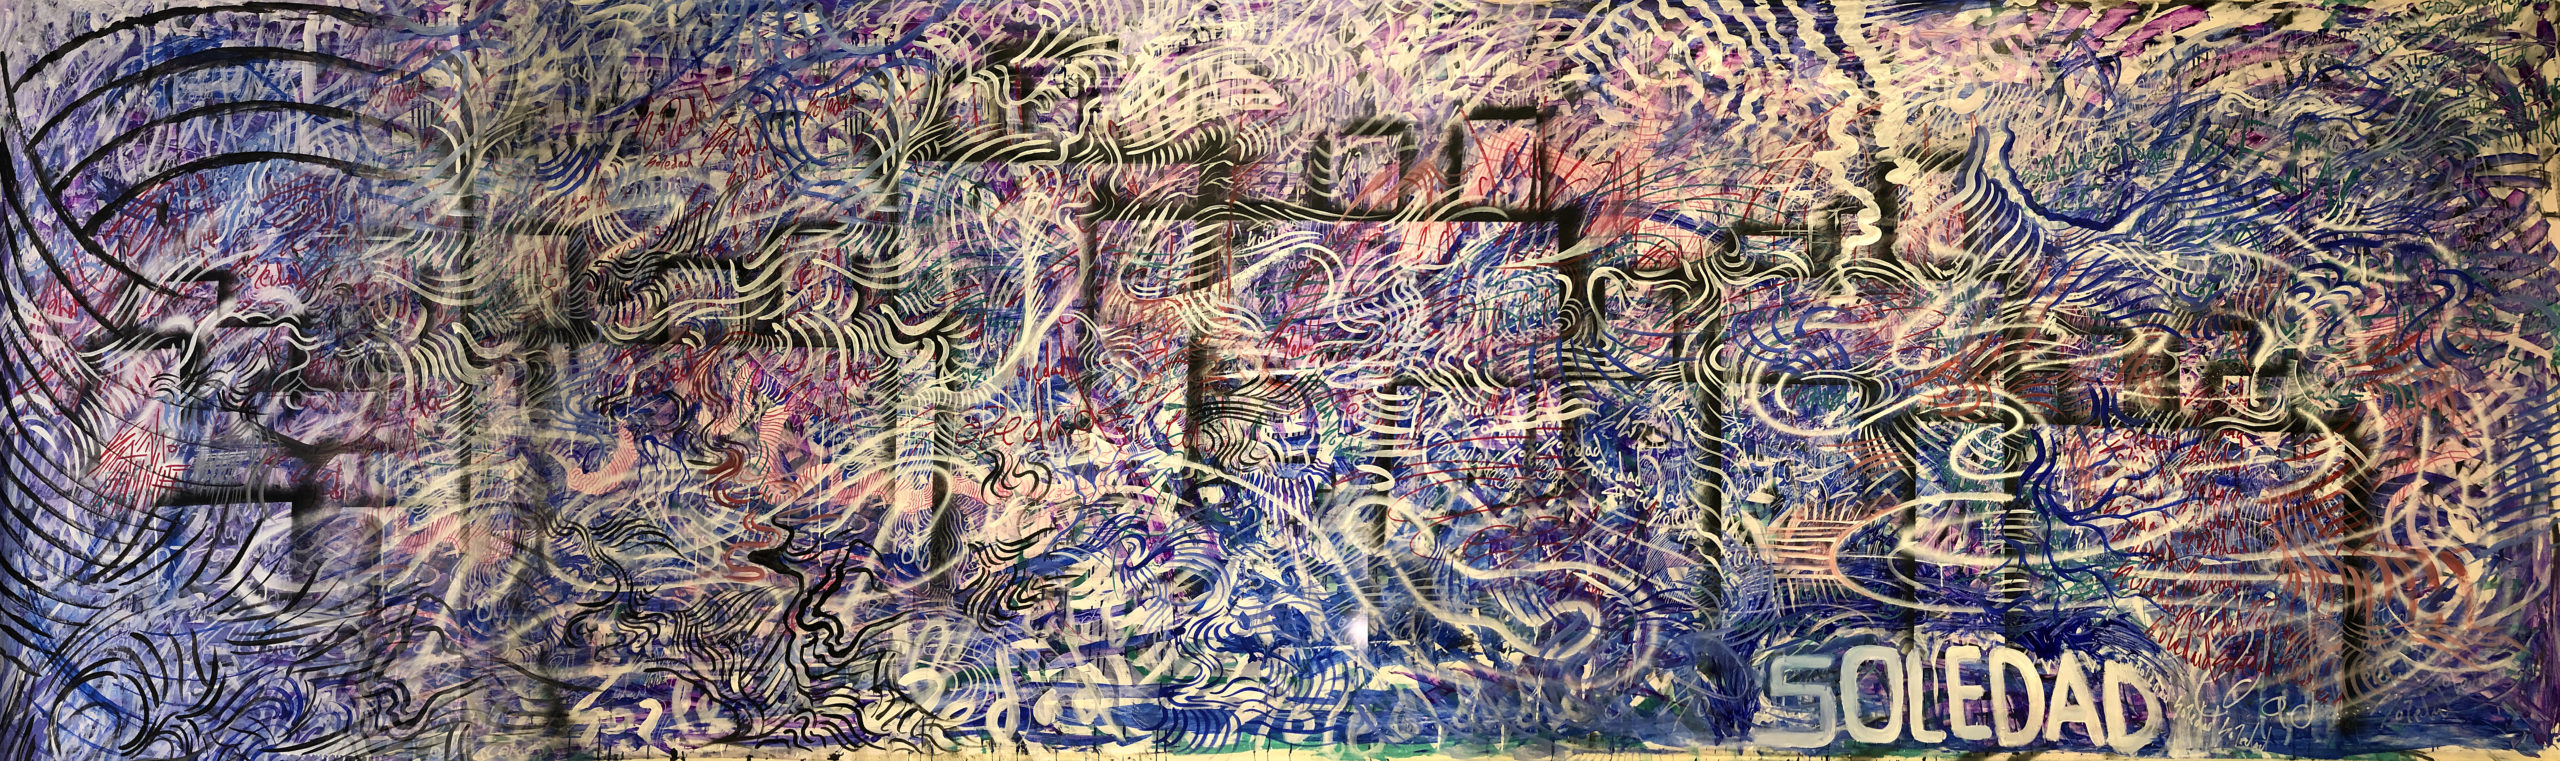 "Soledad - mixed media - 212"" x 63"""